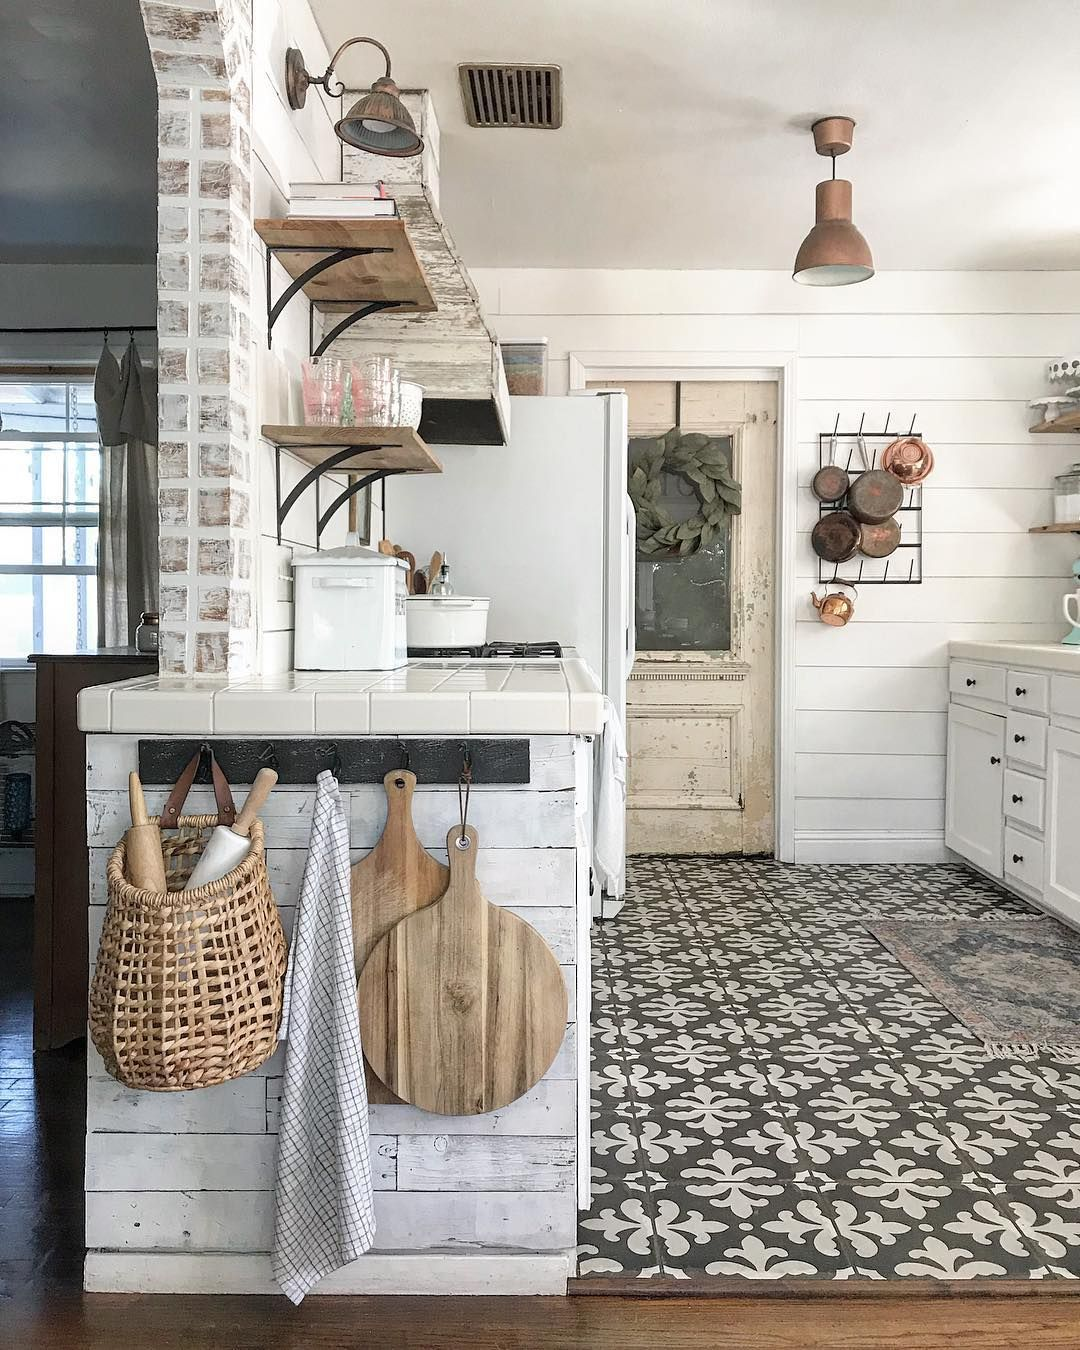 Home Design And Deko Shopping happily // ✧ | Farmhouse Kitchen Decor, Farmhouse Kitchen Design, Rustic Kitchen